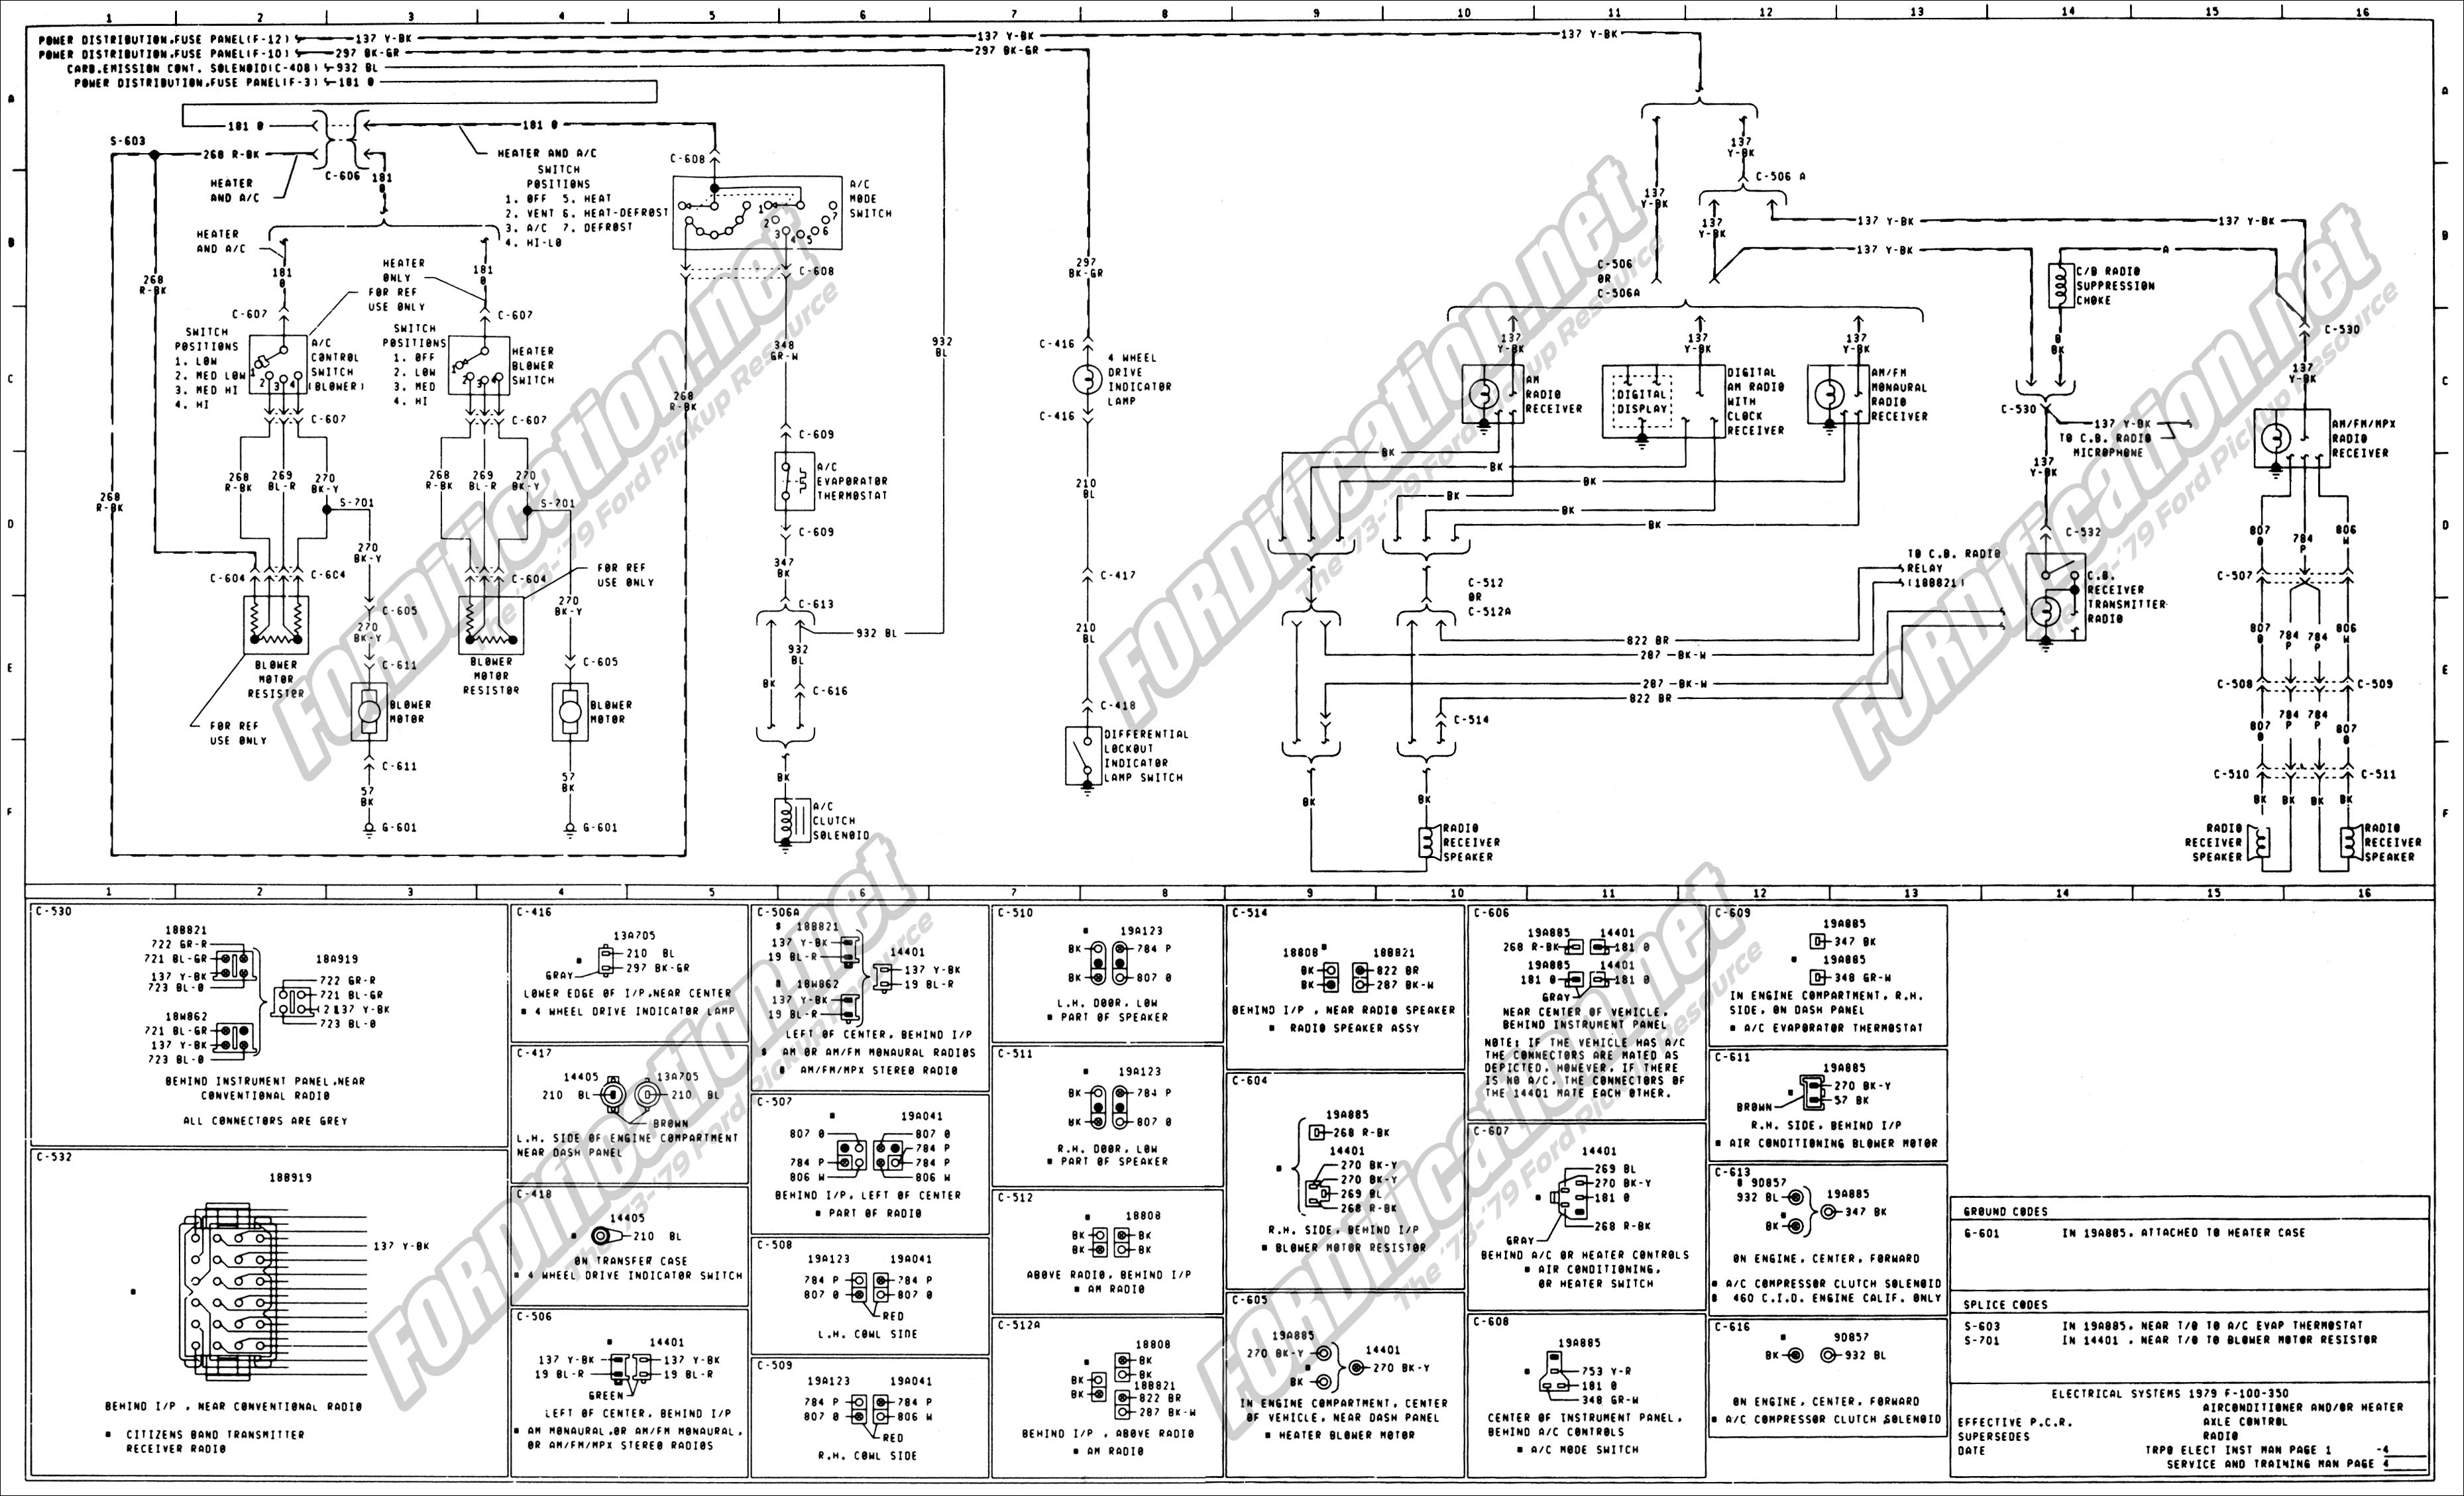 wiring_79master_4of9 79 bronco heater blower wiring question ford truck enthusiasts 1979 bronco fuse box diagram at crackthecode.co